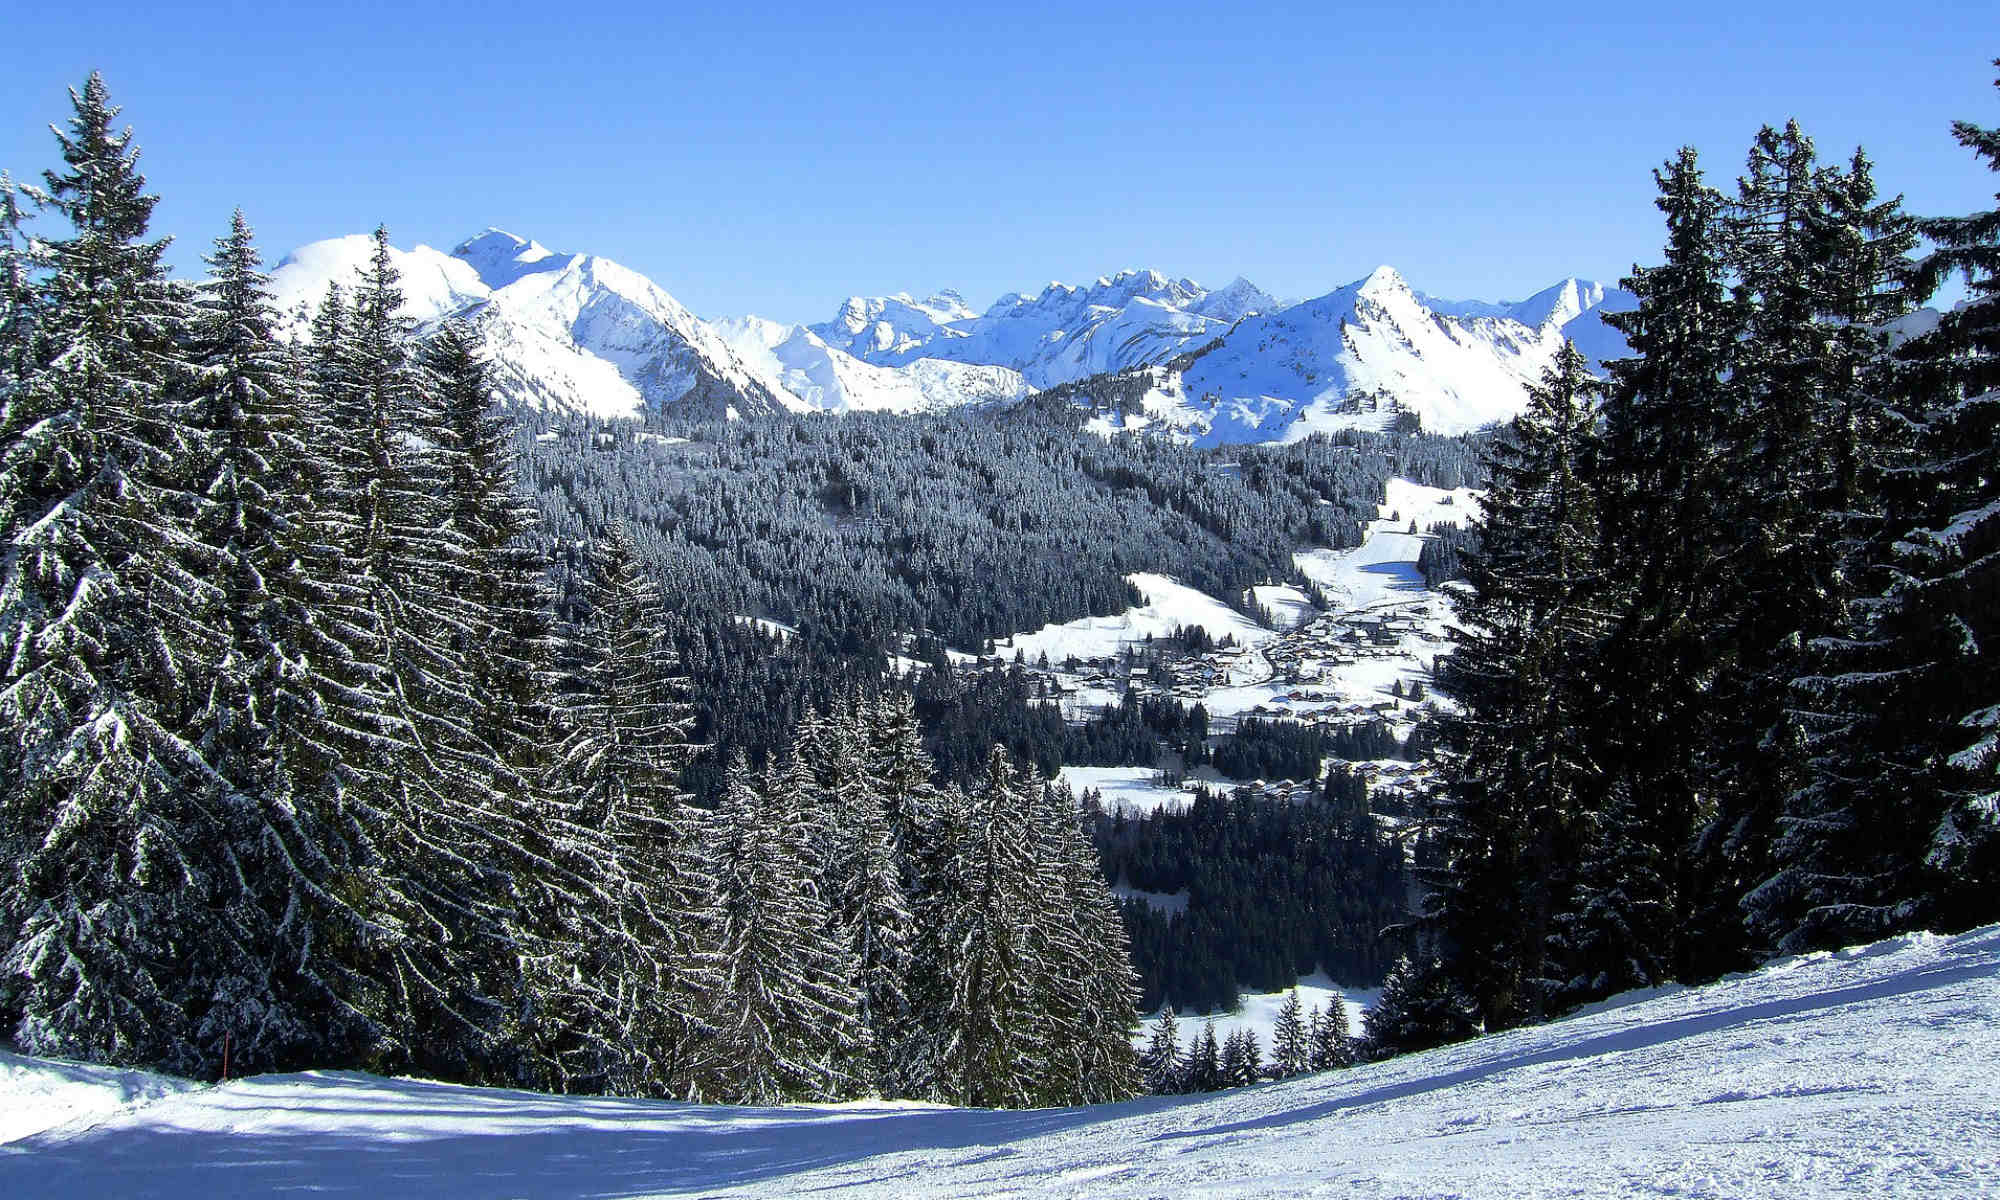 View of Morzine from one of the area's slopes.